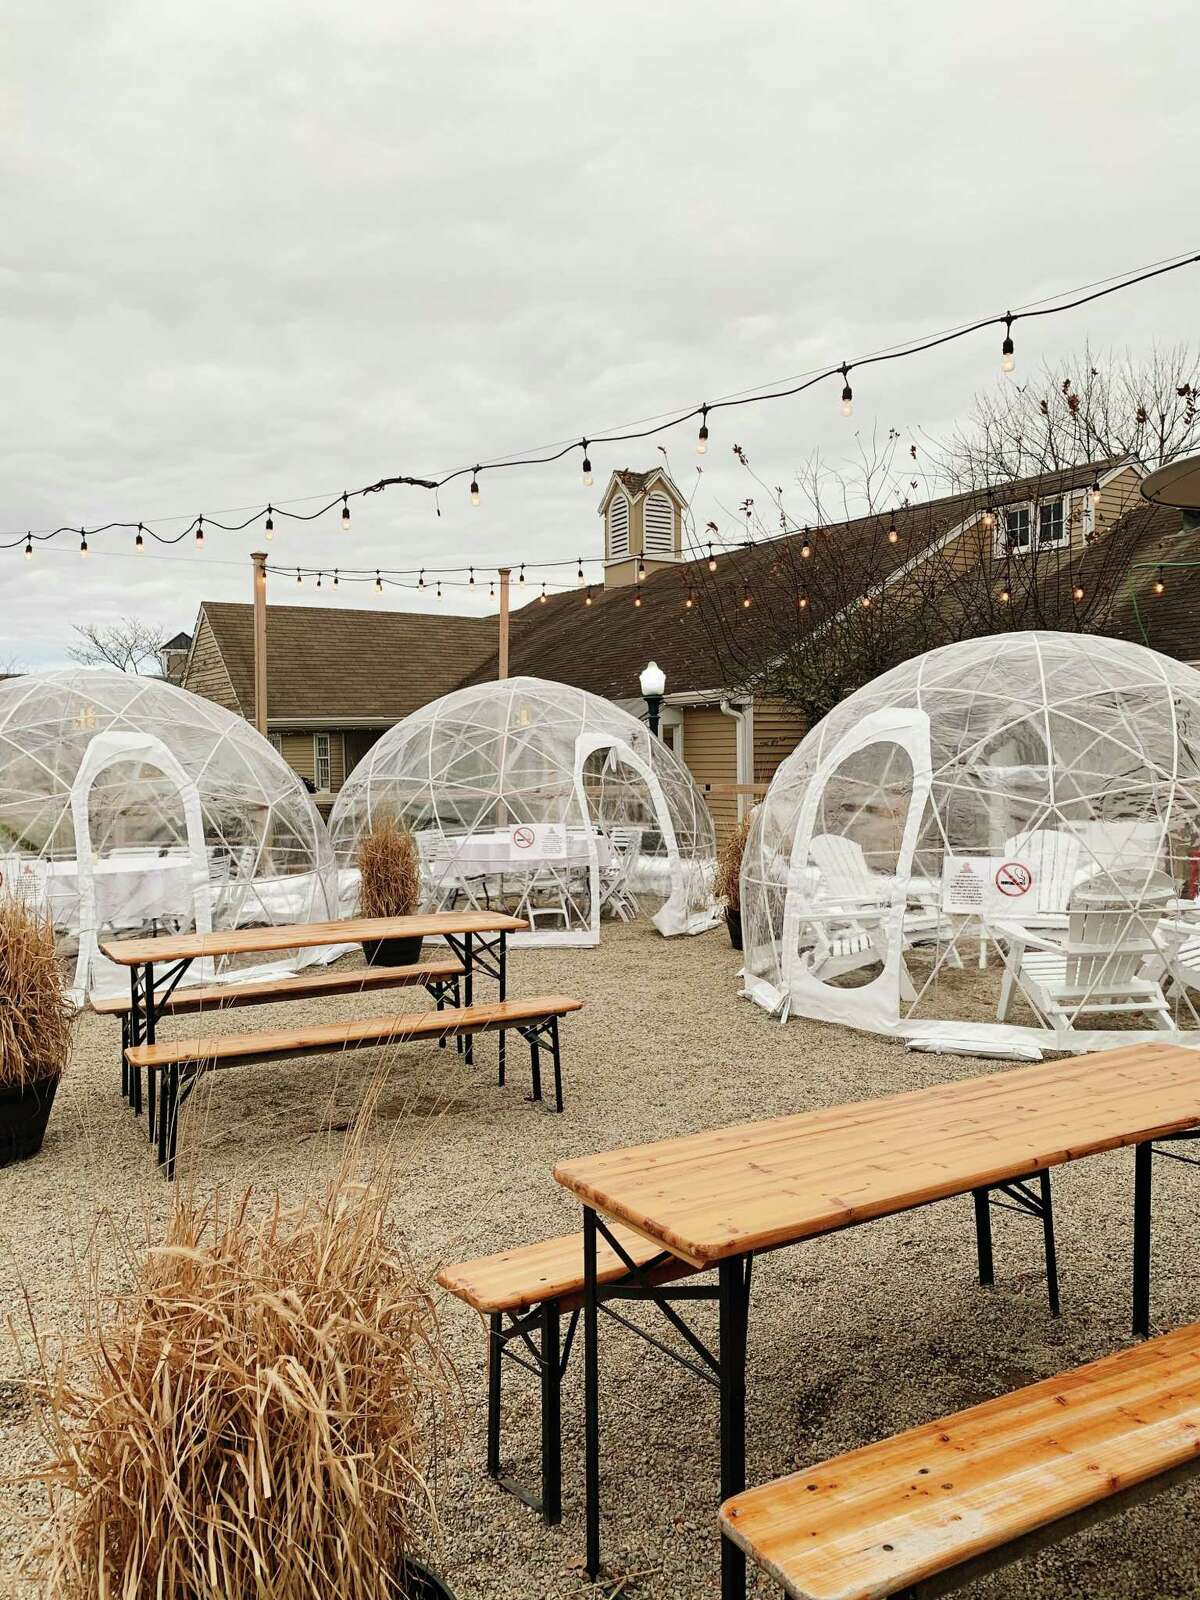 Jealous Monk, at 27 Coogan Blvd. in Mystic, is among those using igloos to maintain business during the colder weather.